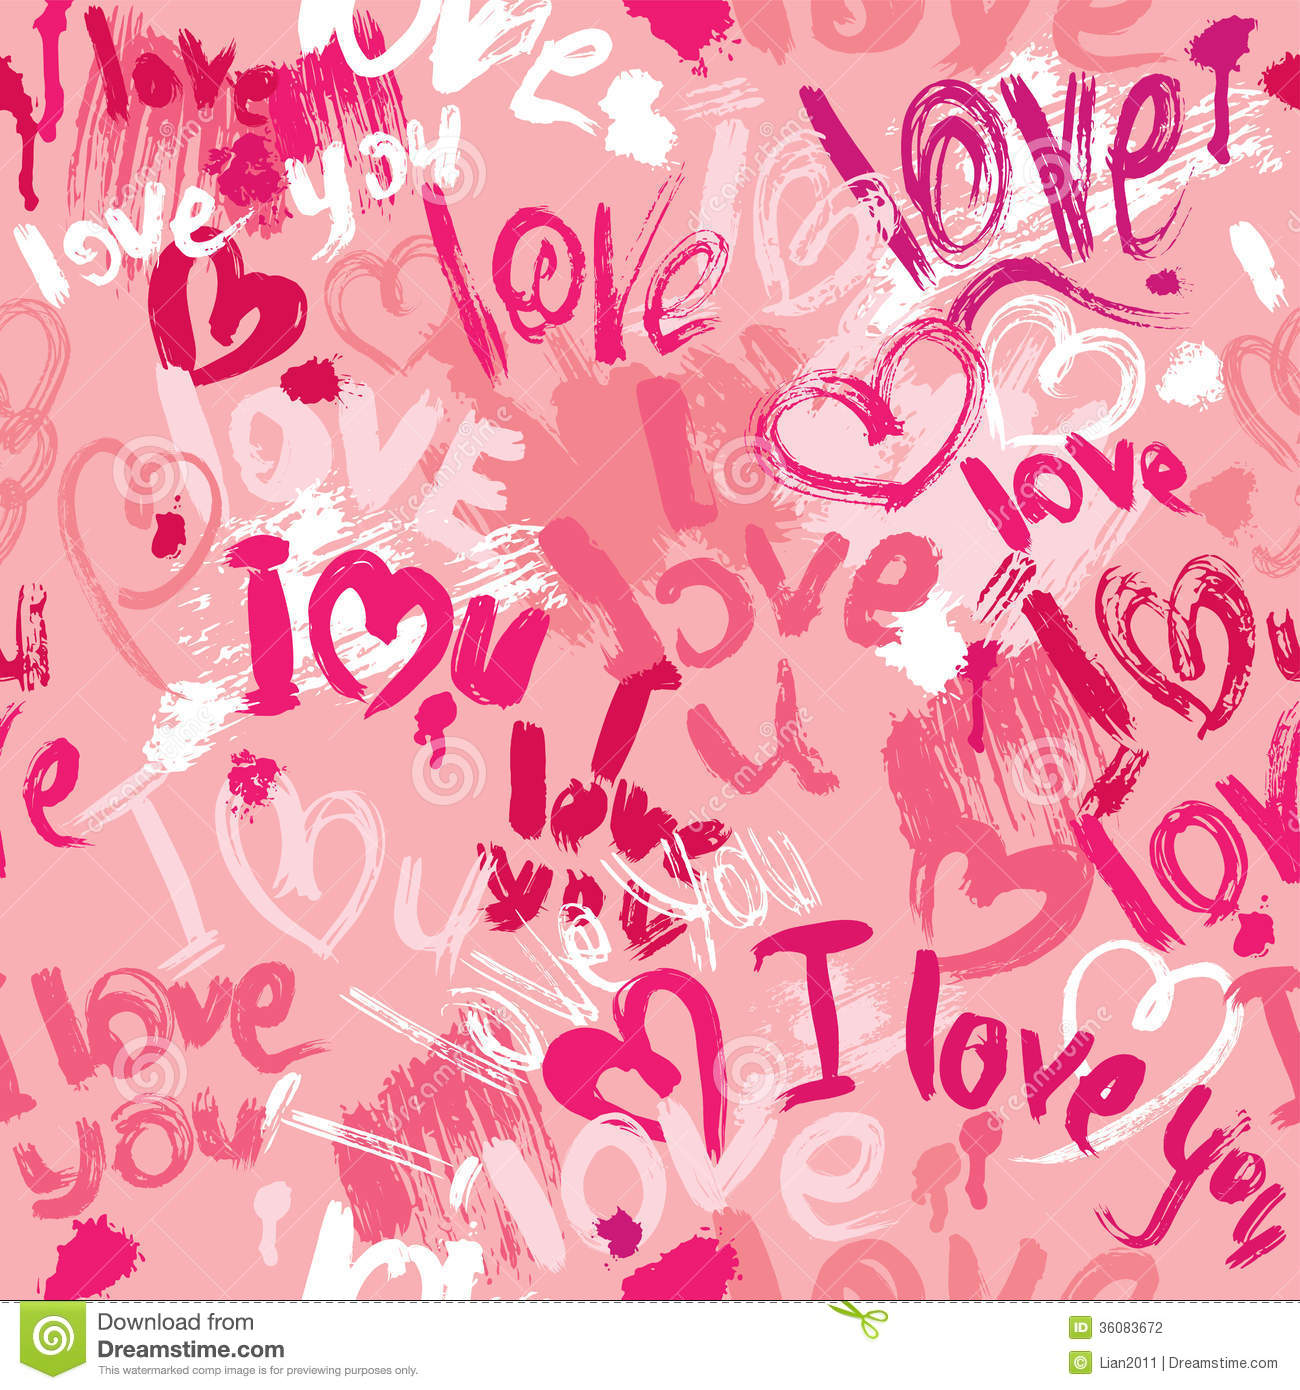 Love Shape Design Wallpaper : Seamless Pattern With Brush Strokes And Scribbles Stock Photography - Image: 36083672